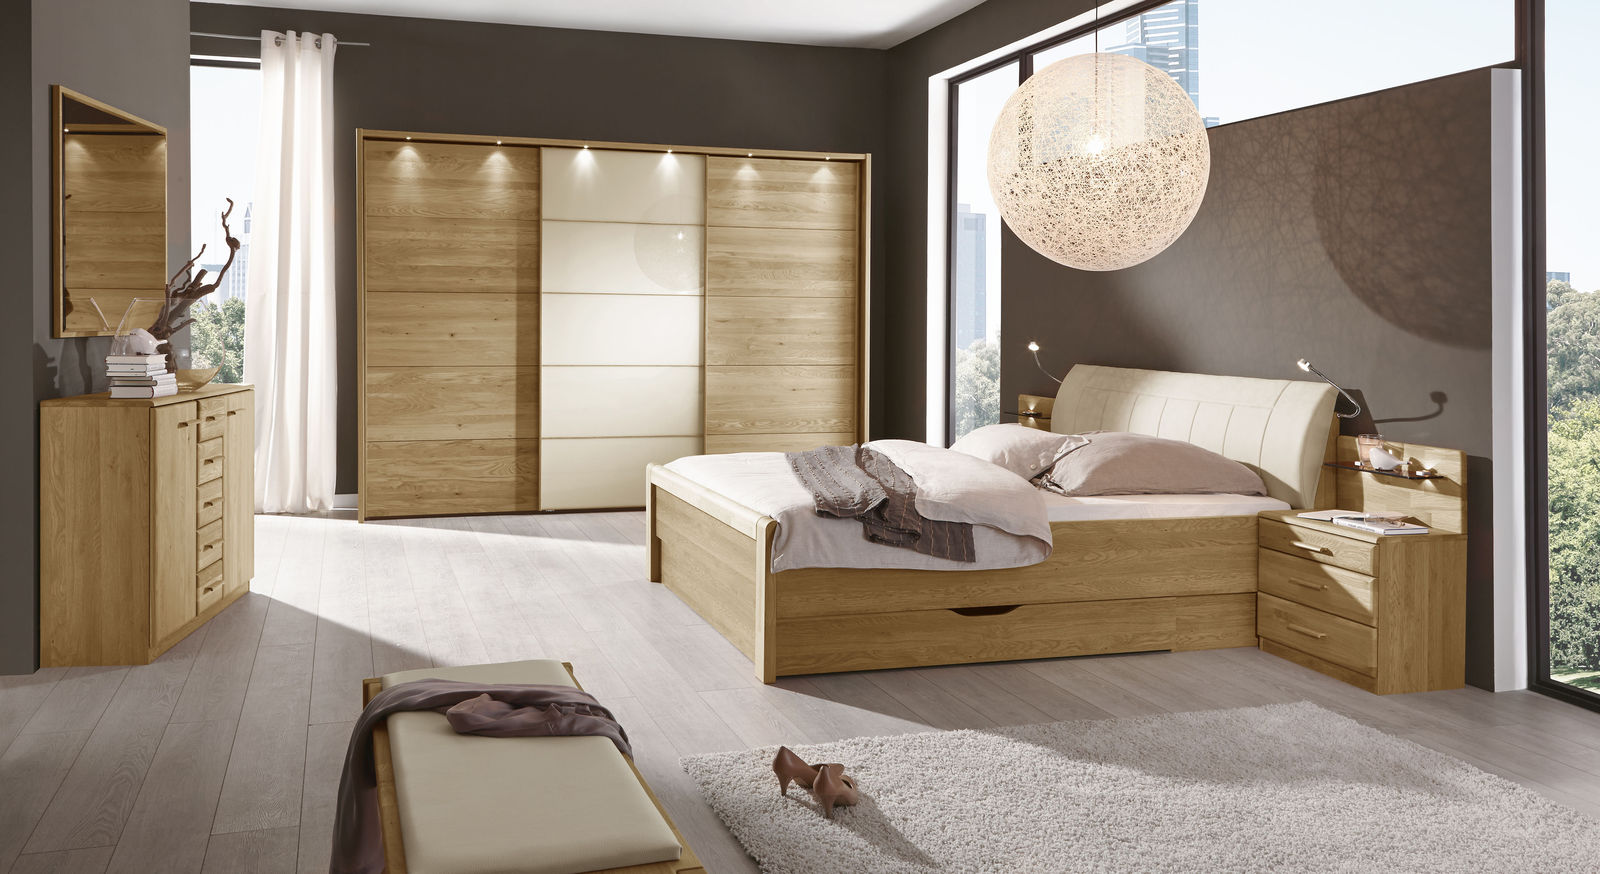 schubkastenbett teilmassive eiche mit kunstleder kopfteil praia. Black Bedroom Furniture Sets. Home Design Ideas